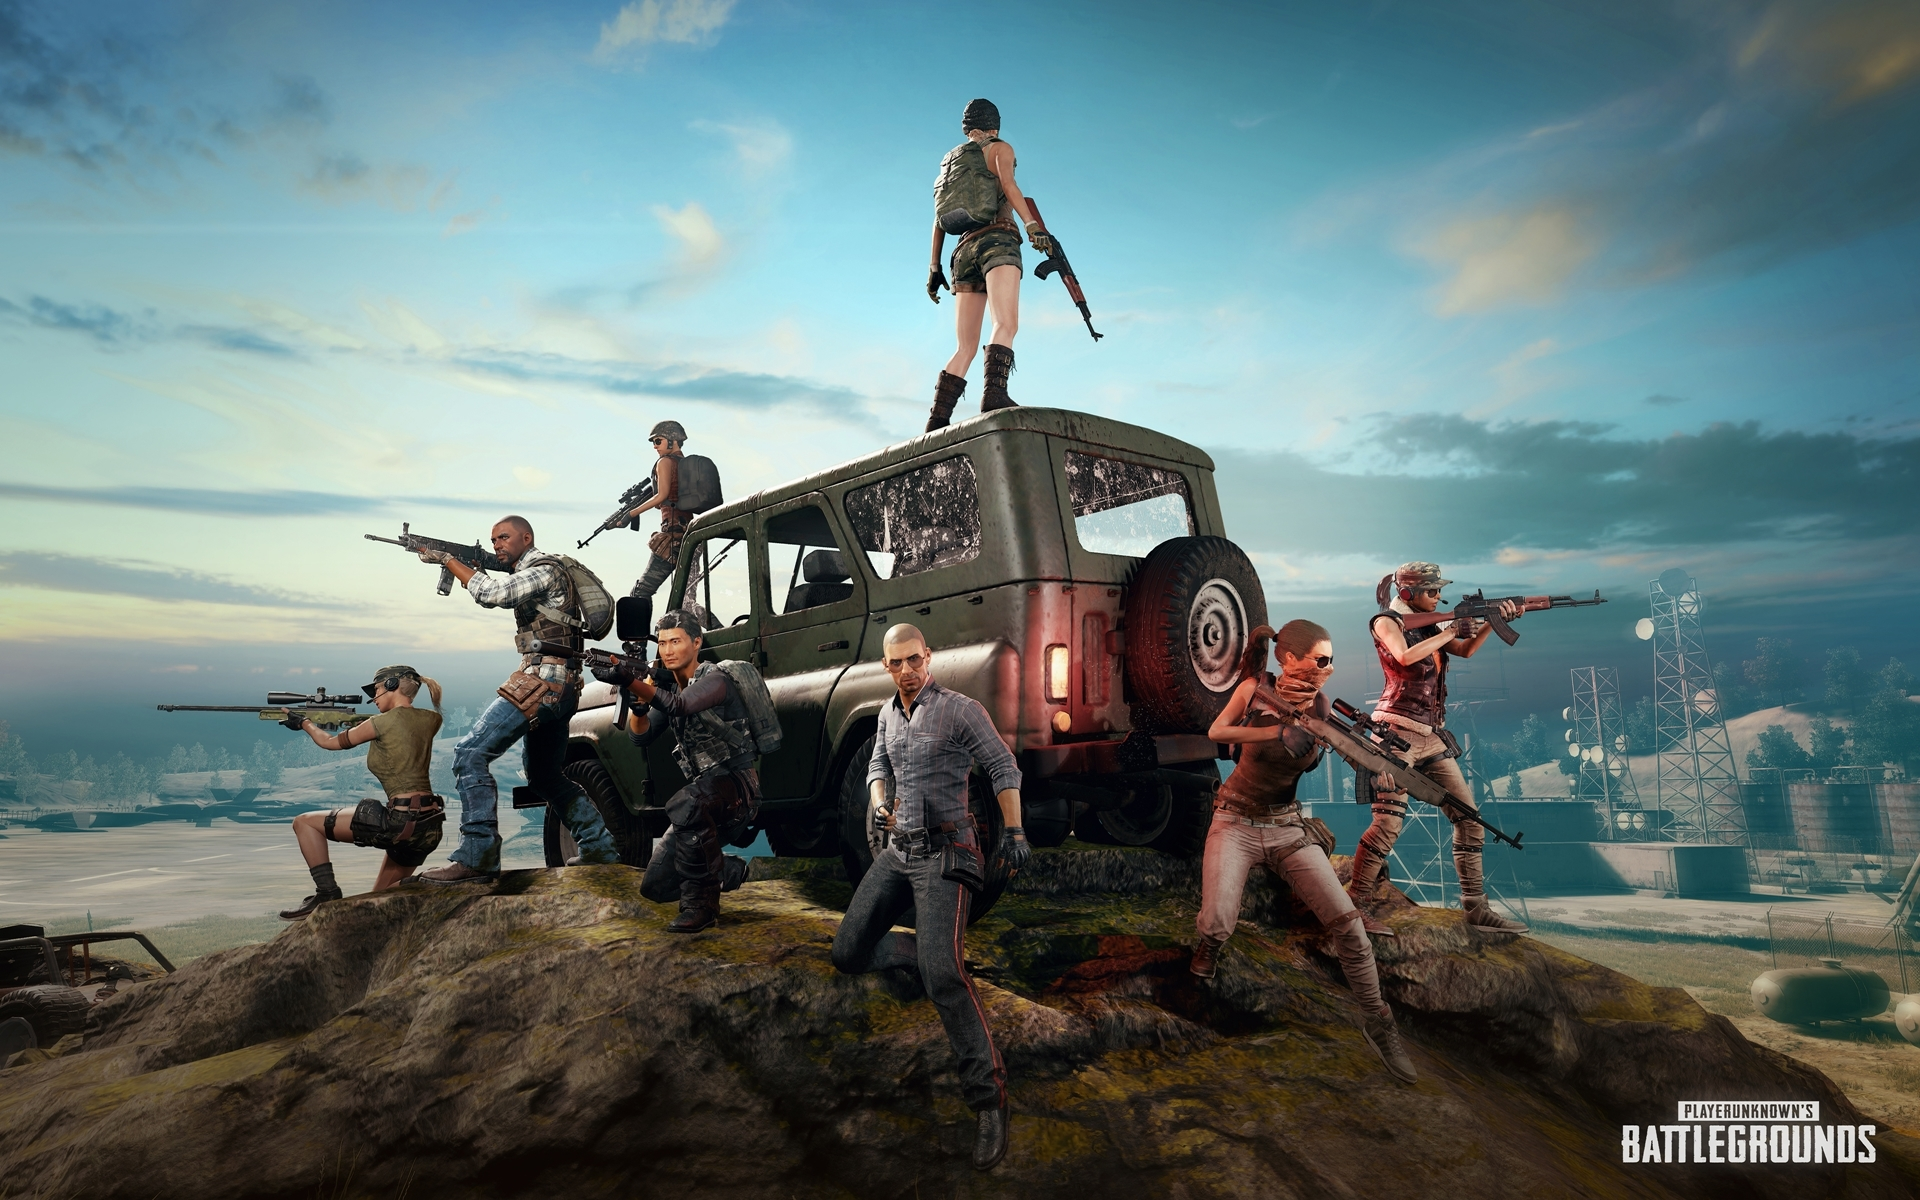 Cross play is coming to PUBG on consoles